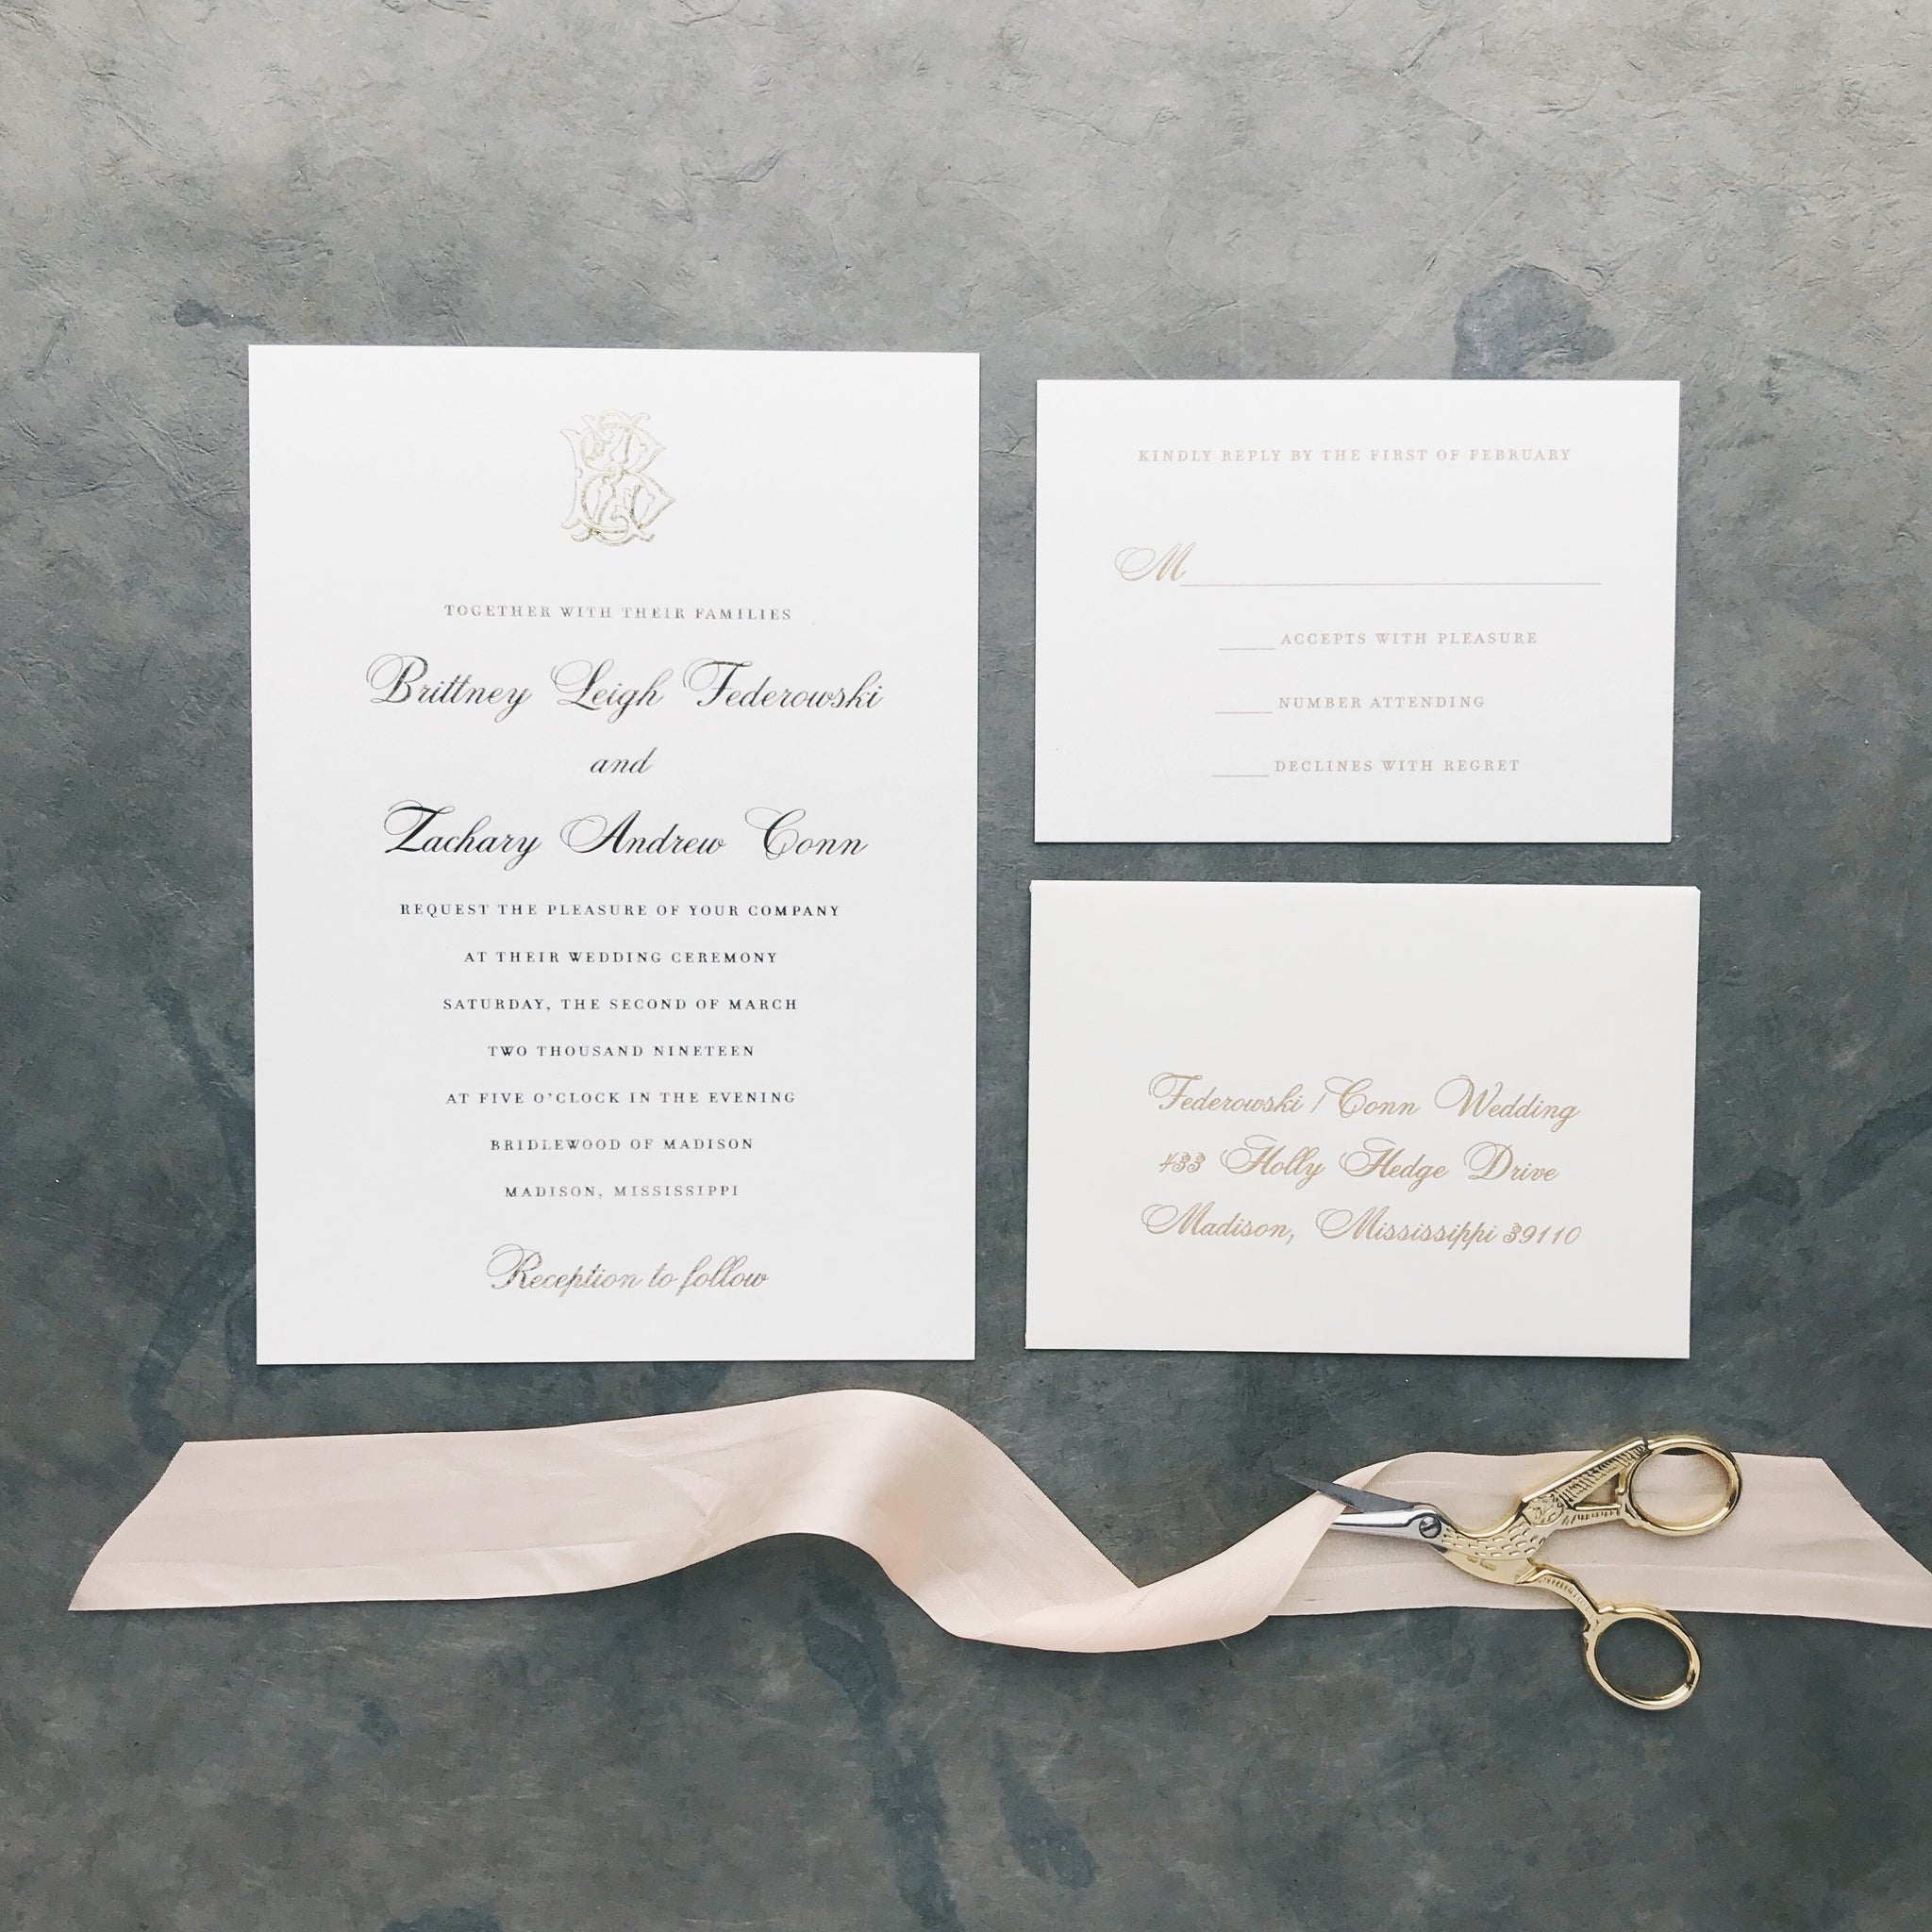 Federowski Wedding Invitation - Deposit Listing